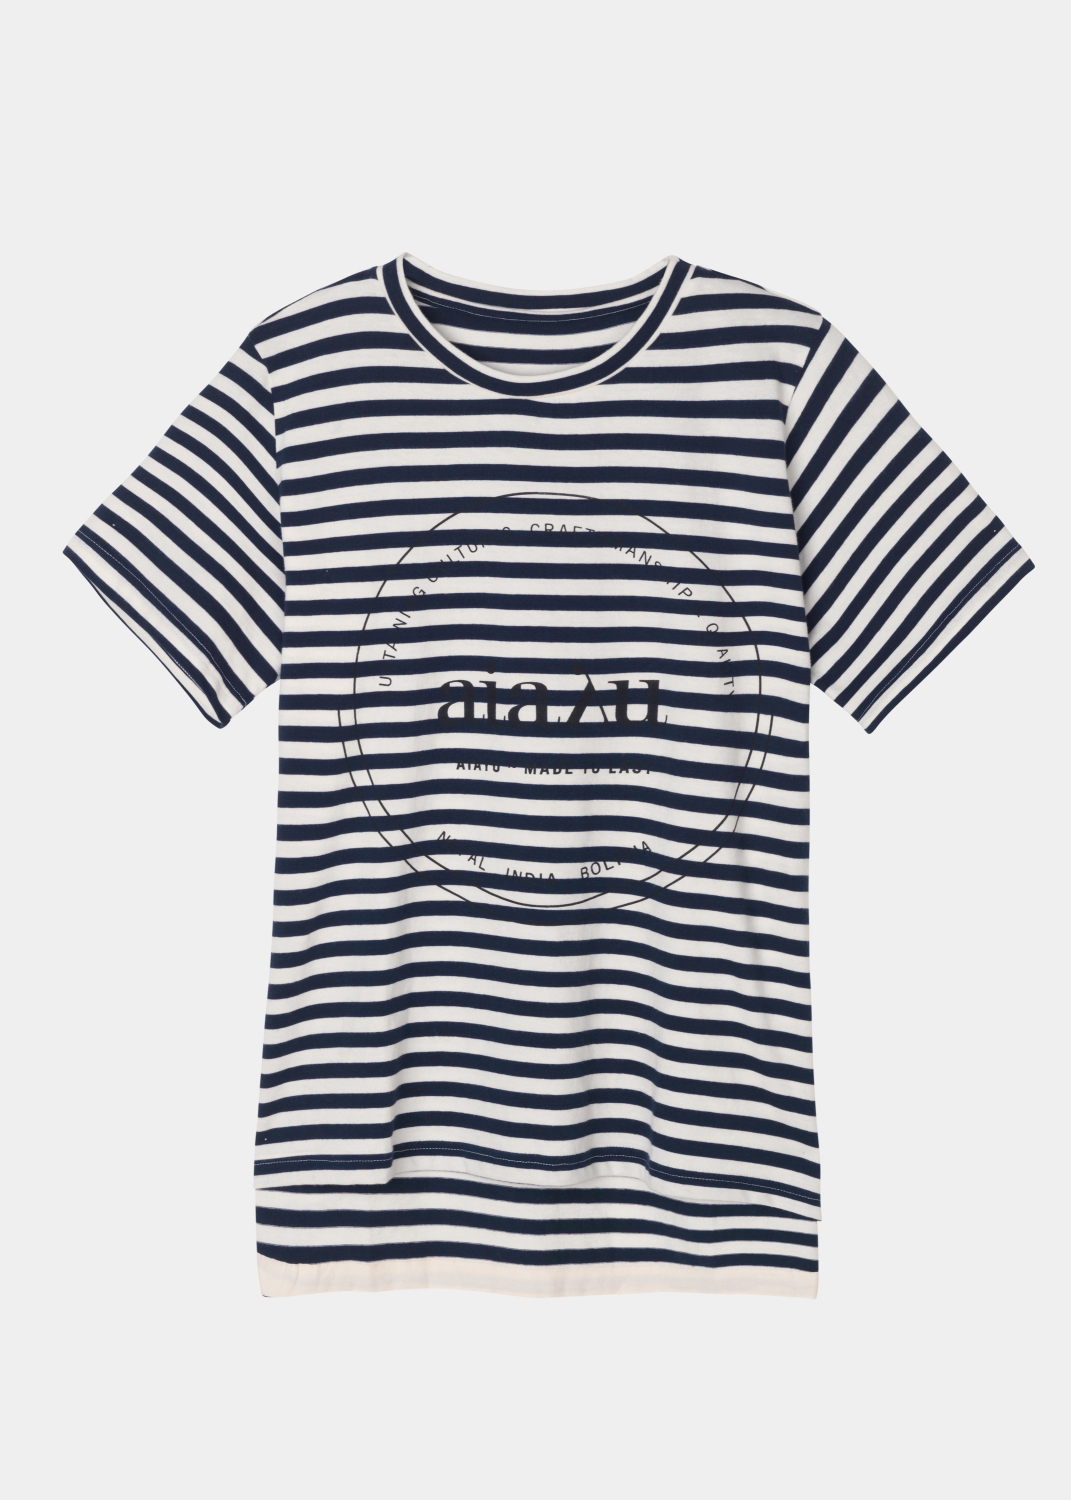 Blouses & Tees - Printed Striped Tee Thumbnail